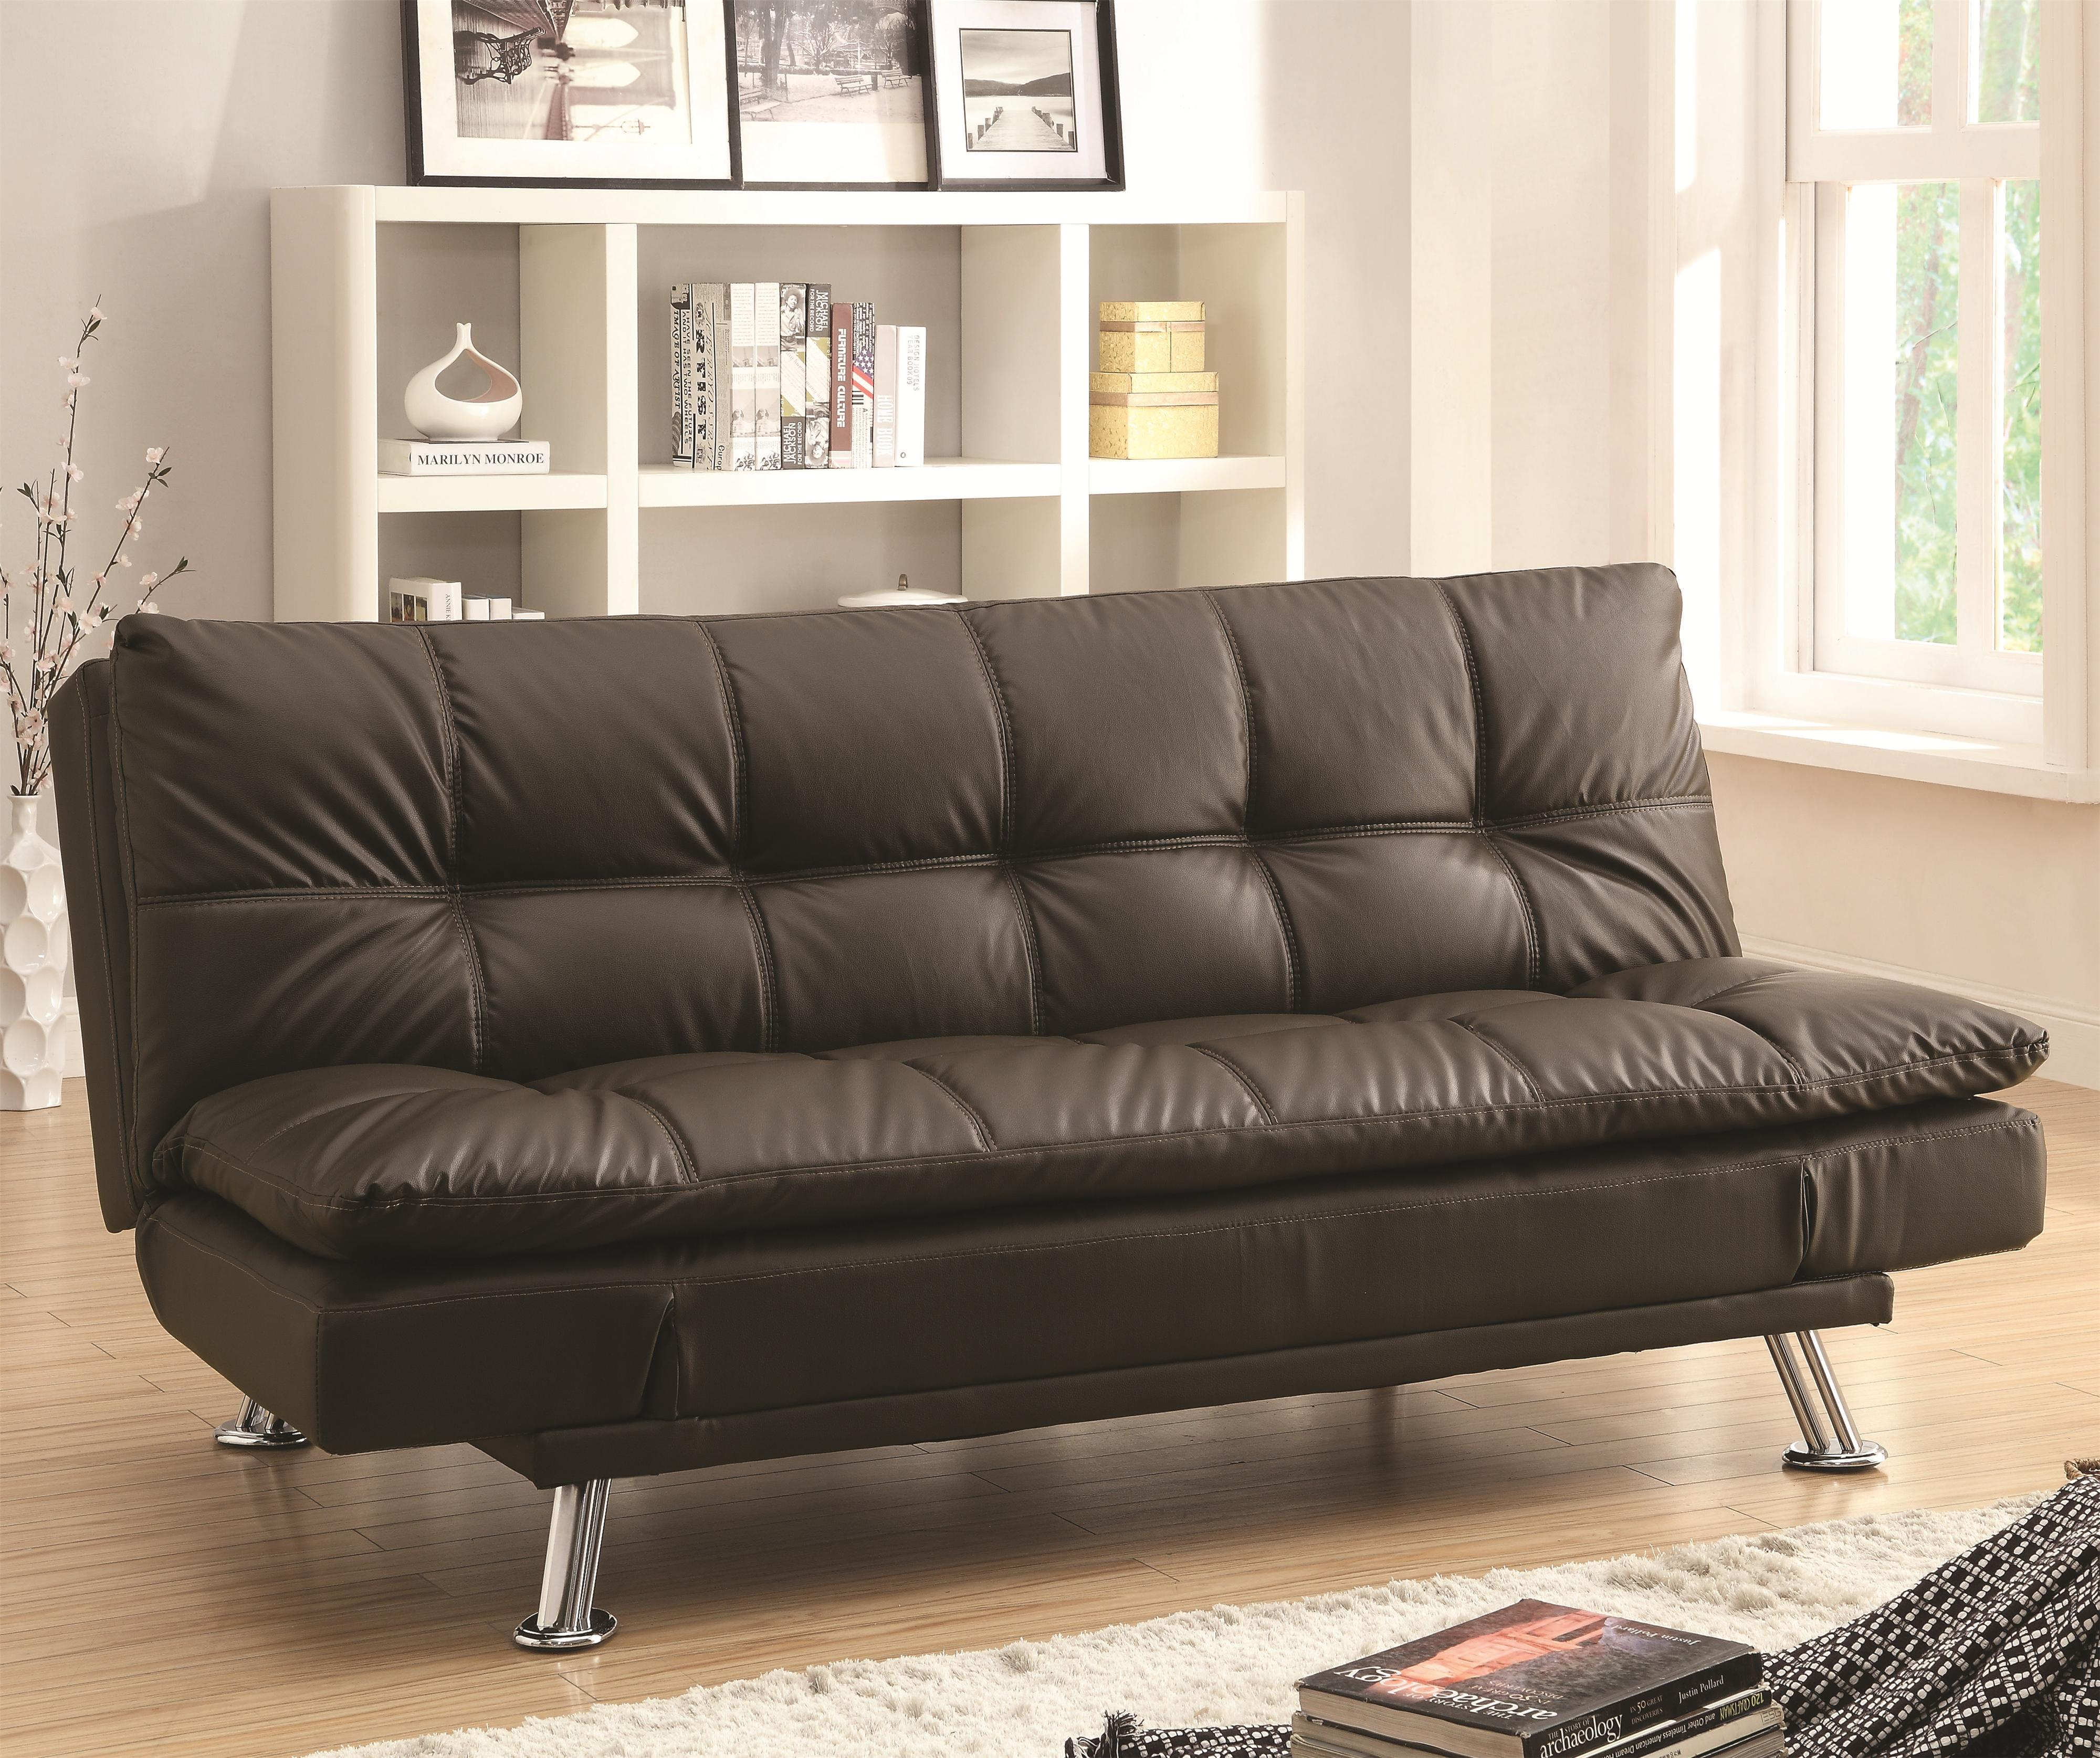 Coaster Dilleston Sofa Bed in Futon Style with Chrome Legs  Rifes Home Furniture  Futons